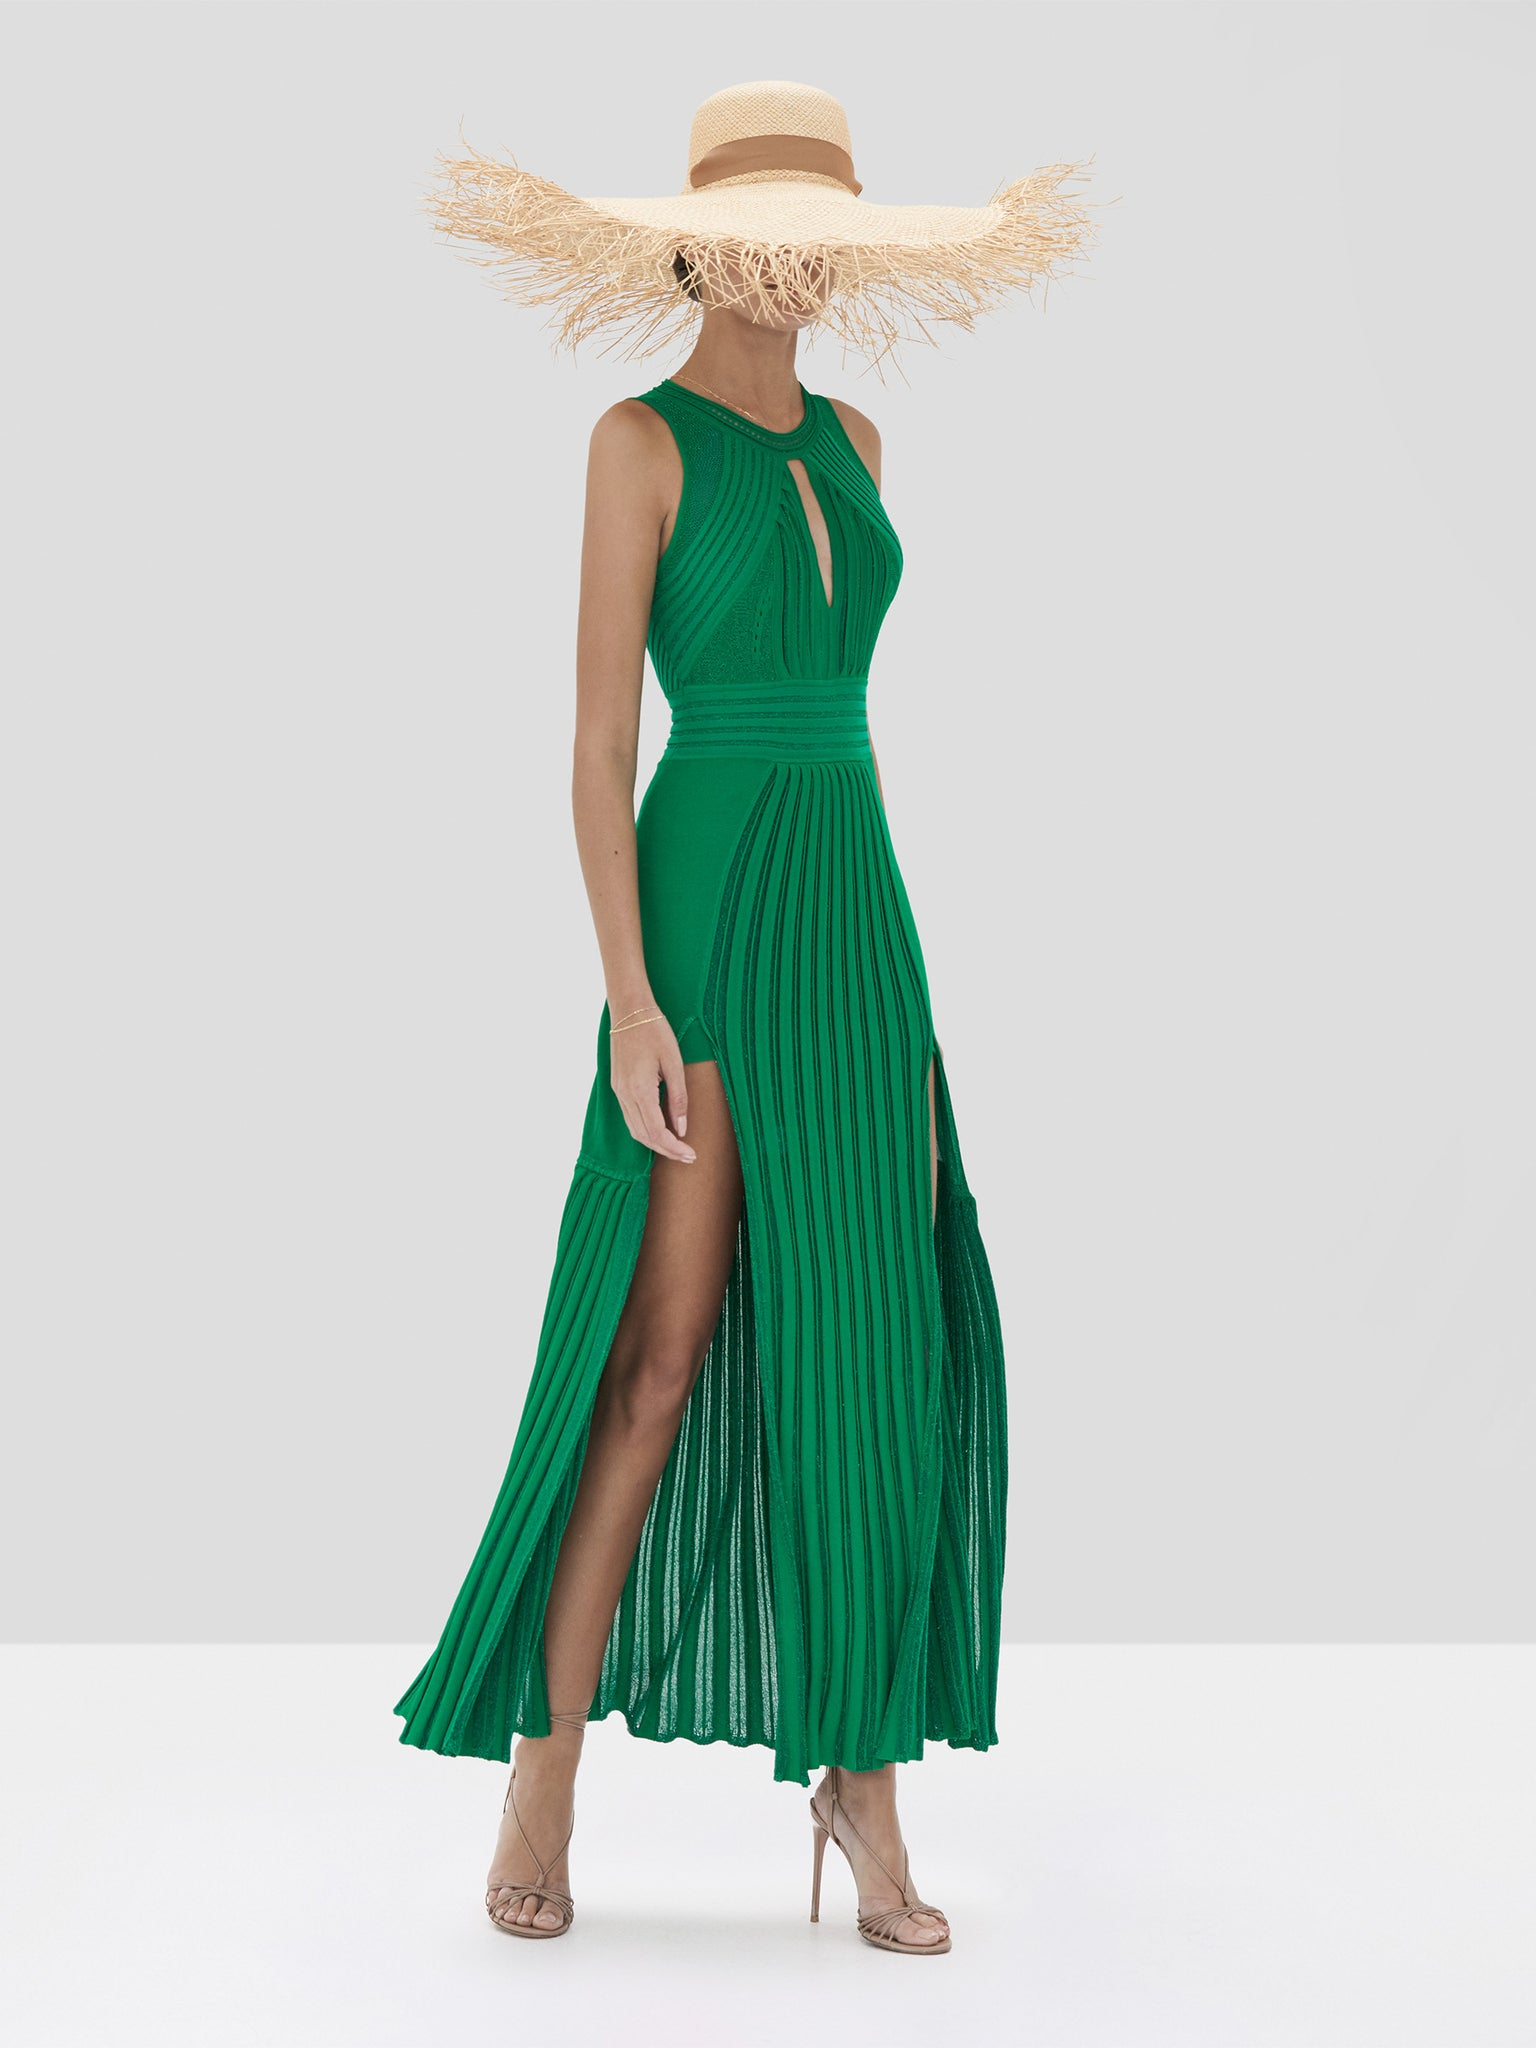 Alexis Gara Dress in Green from the Spring Summer 2020 Collection